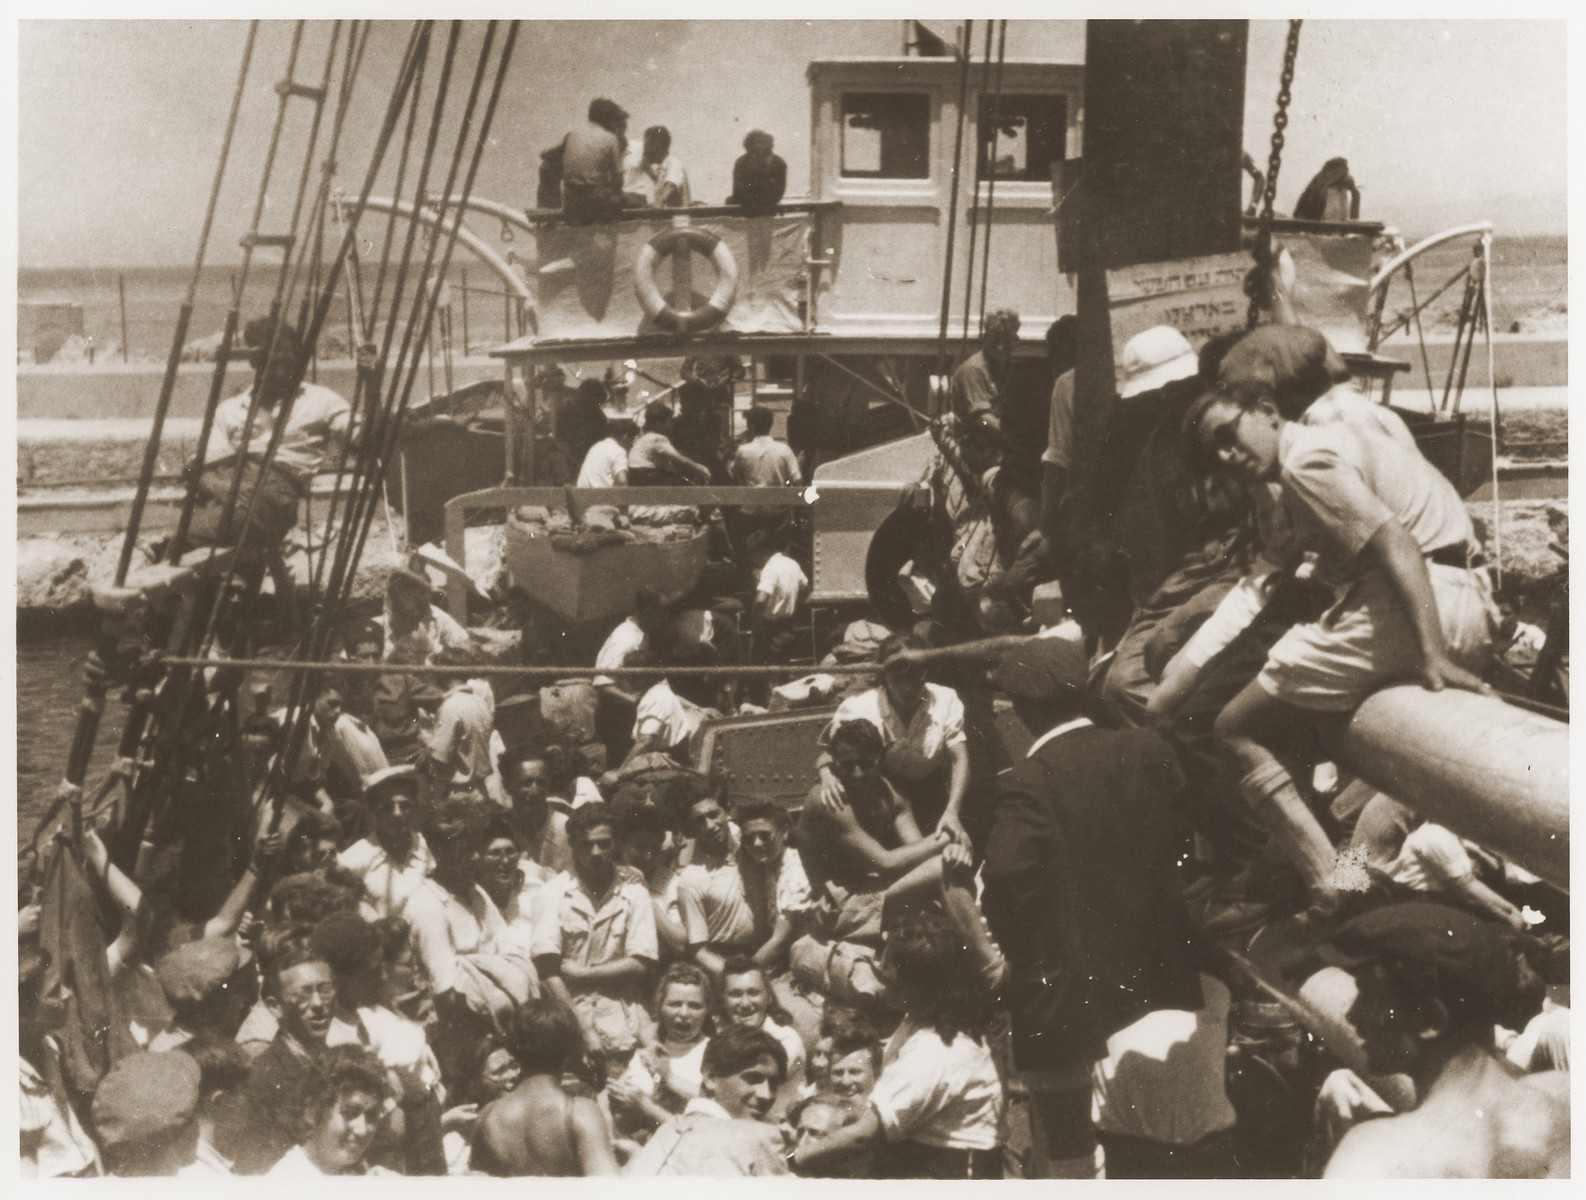 Jewish DPs on board the Dov Hos in the port of La Spezia awaiting permission to sail to Palestine.